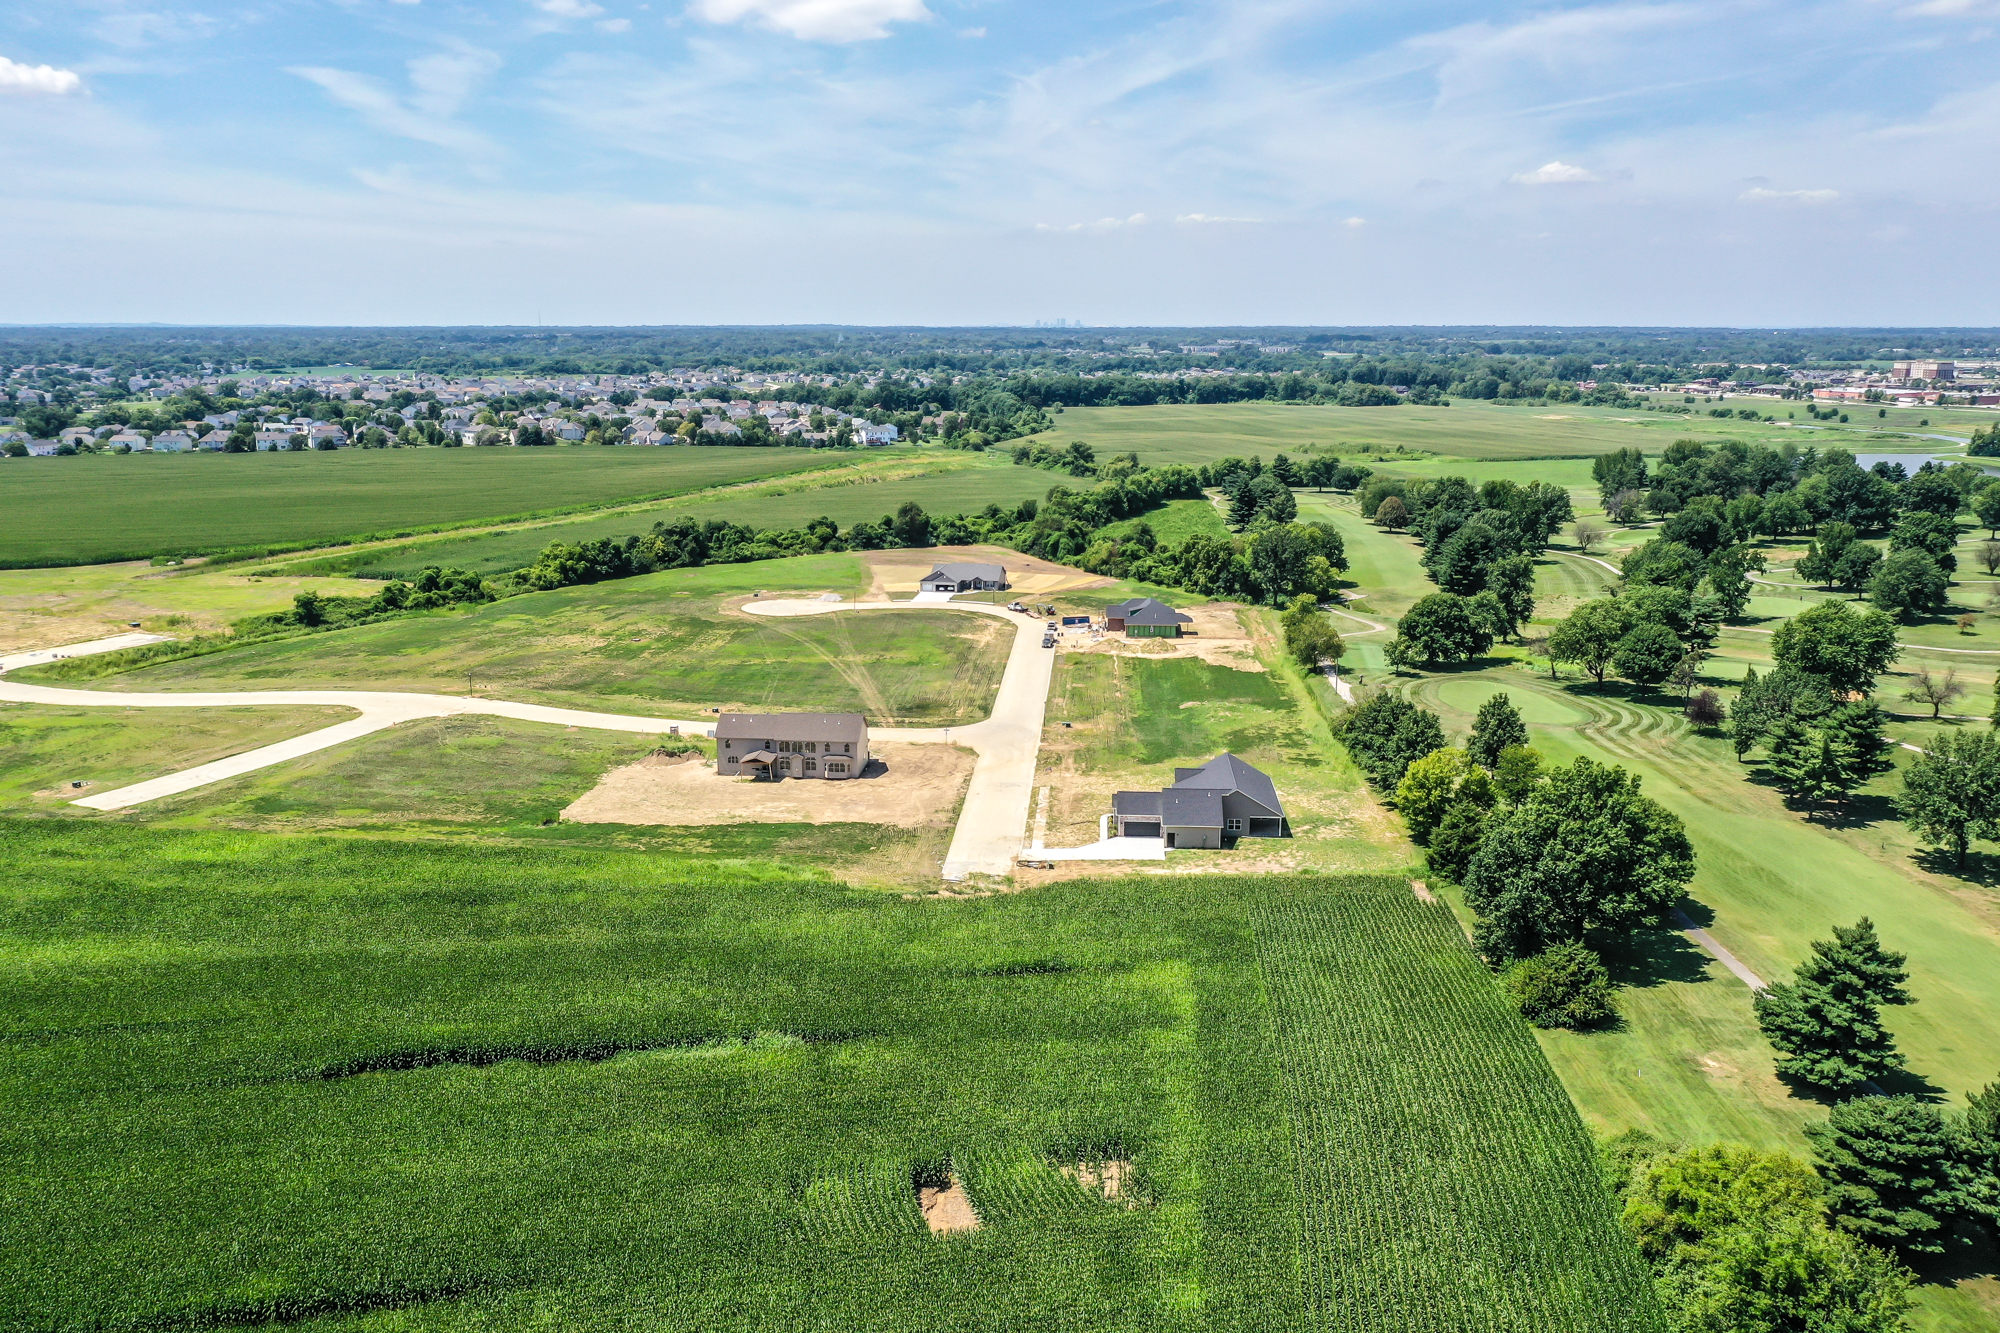 New_Construction_Homes_For_Sale_Shiloh_Illinois_Near_Scott_AFB-16.jpg